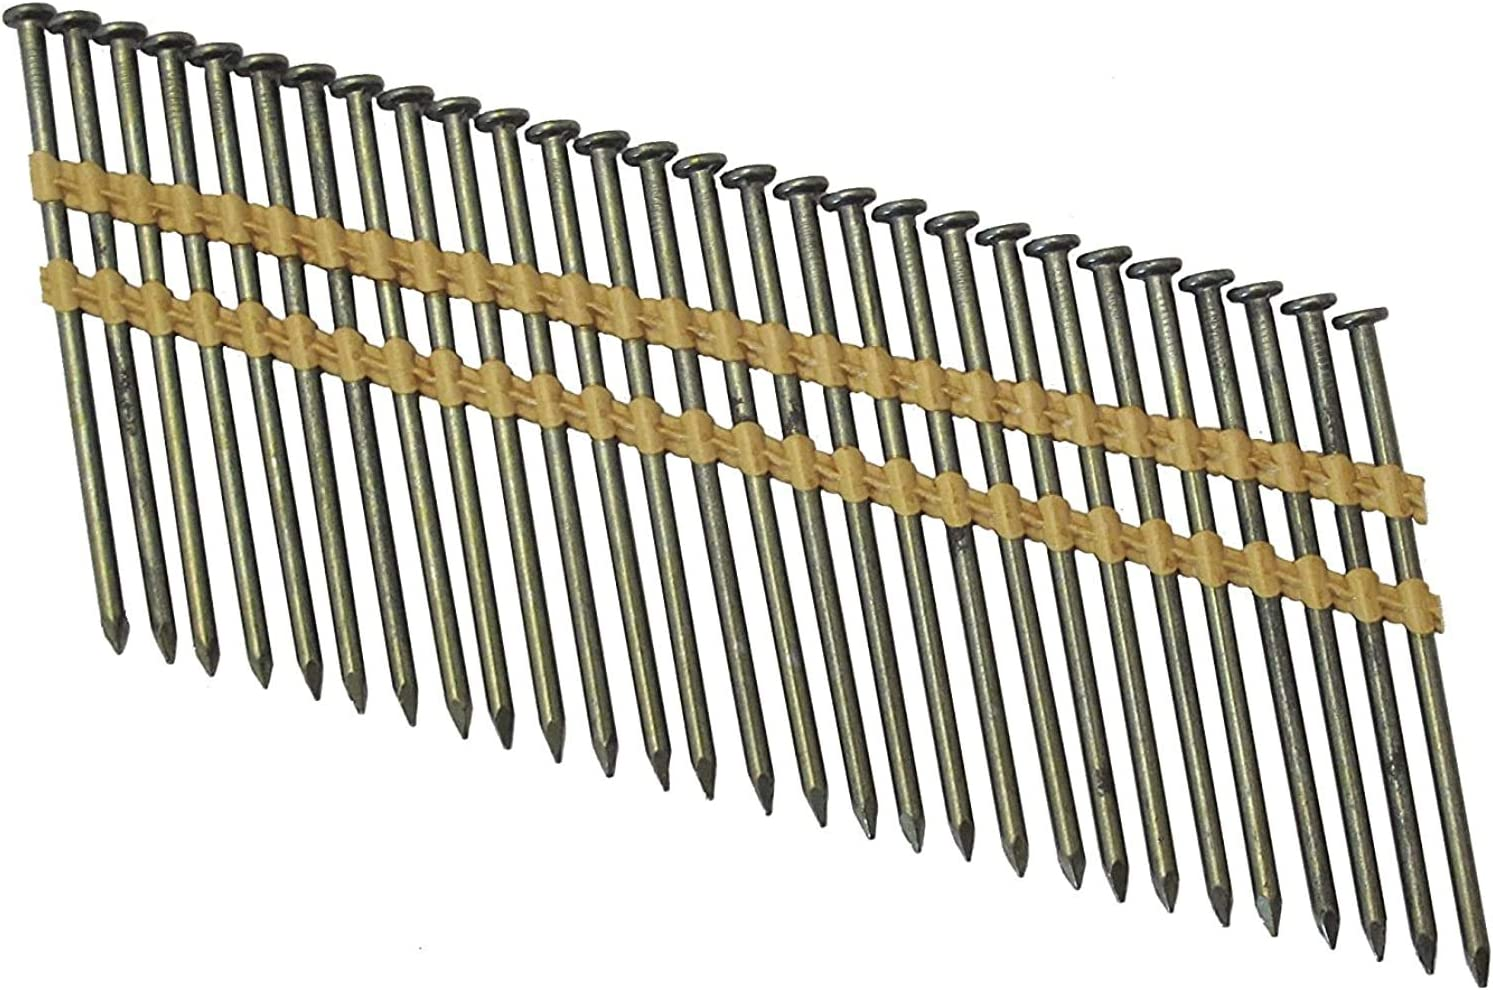 Steel Grip Rite Prime Guard GRC12PZD 15-deg Bright Wire Coil Nails Smooth Flat 2,500 per Pack Smooth 3-inch by .131